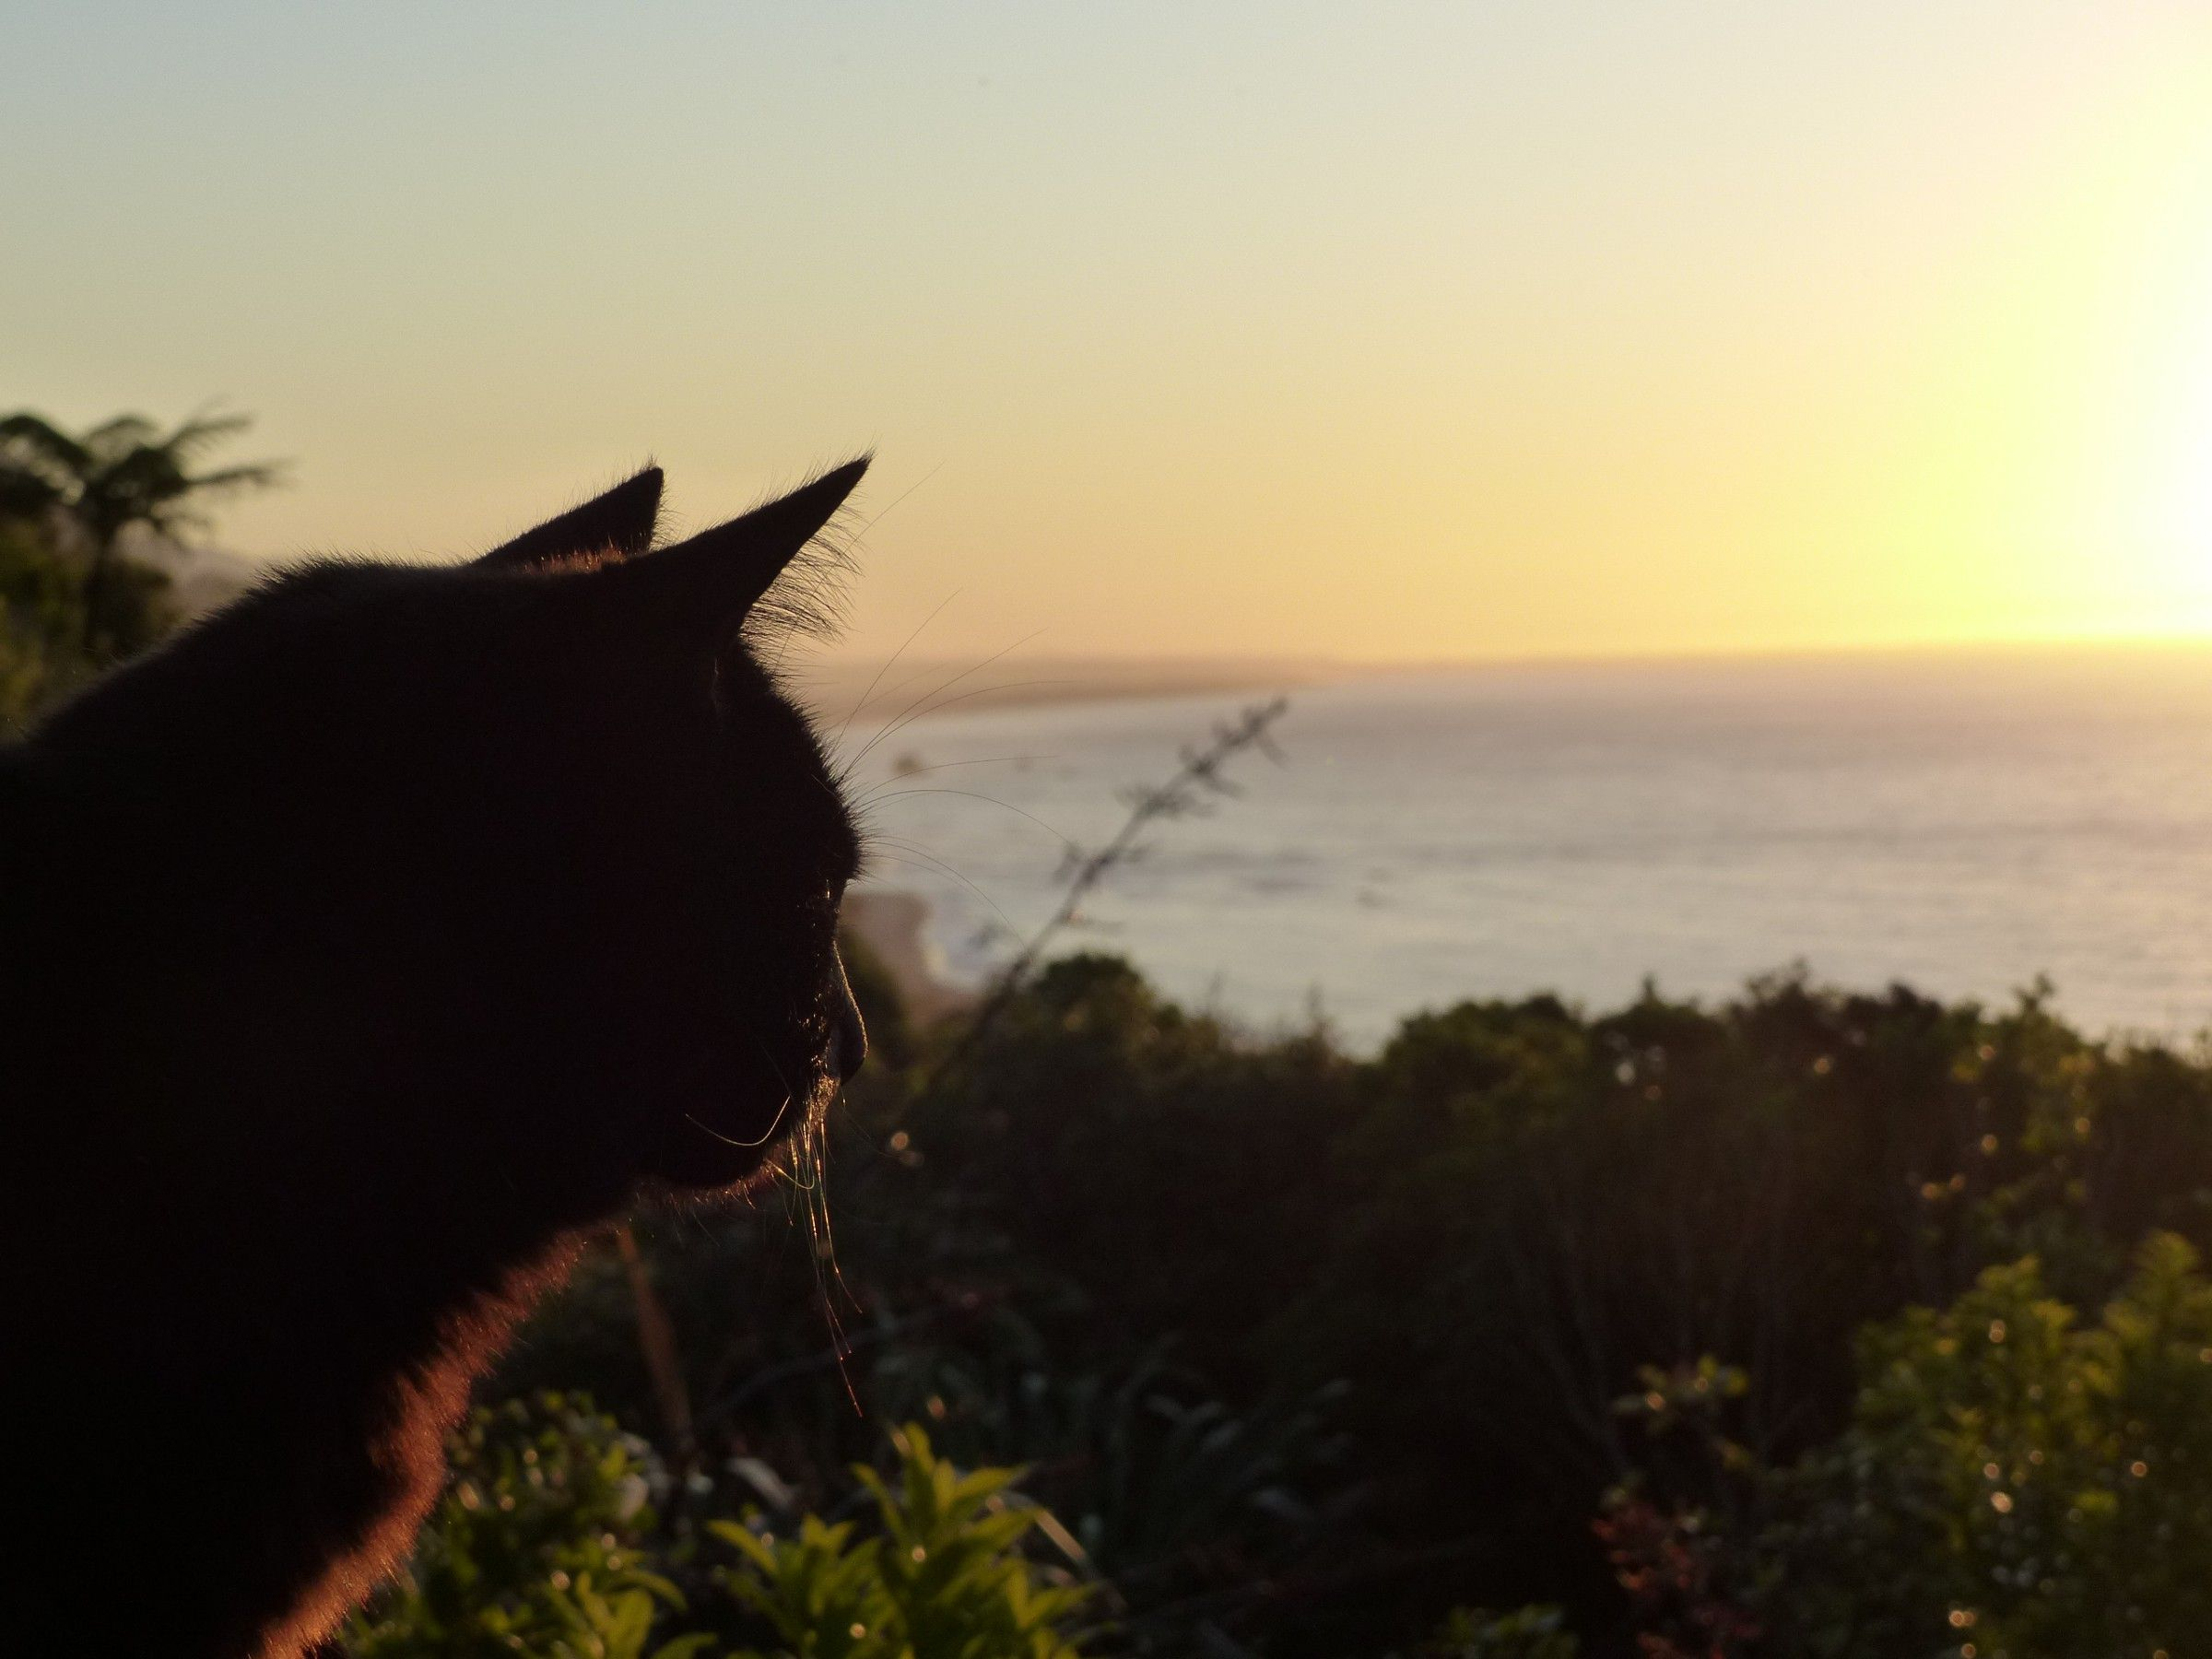 Sammy enjoying the sunset